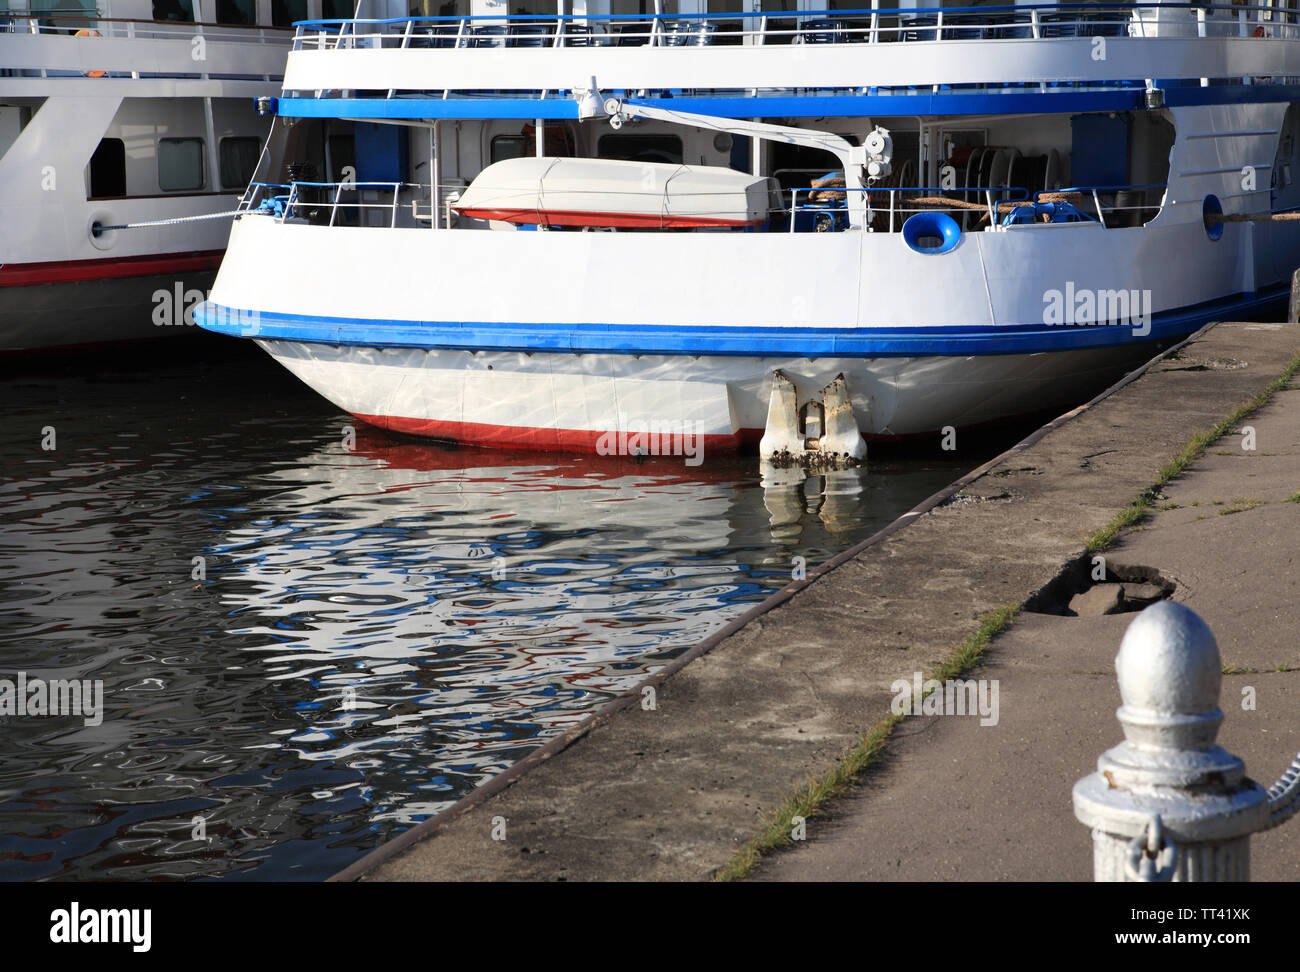 three-dec ship by berth at day to be anchored - Stock Image